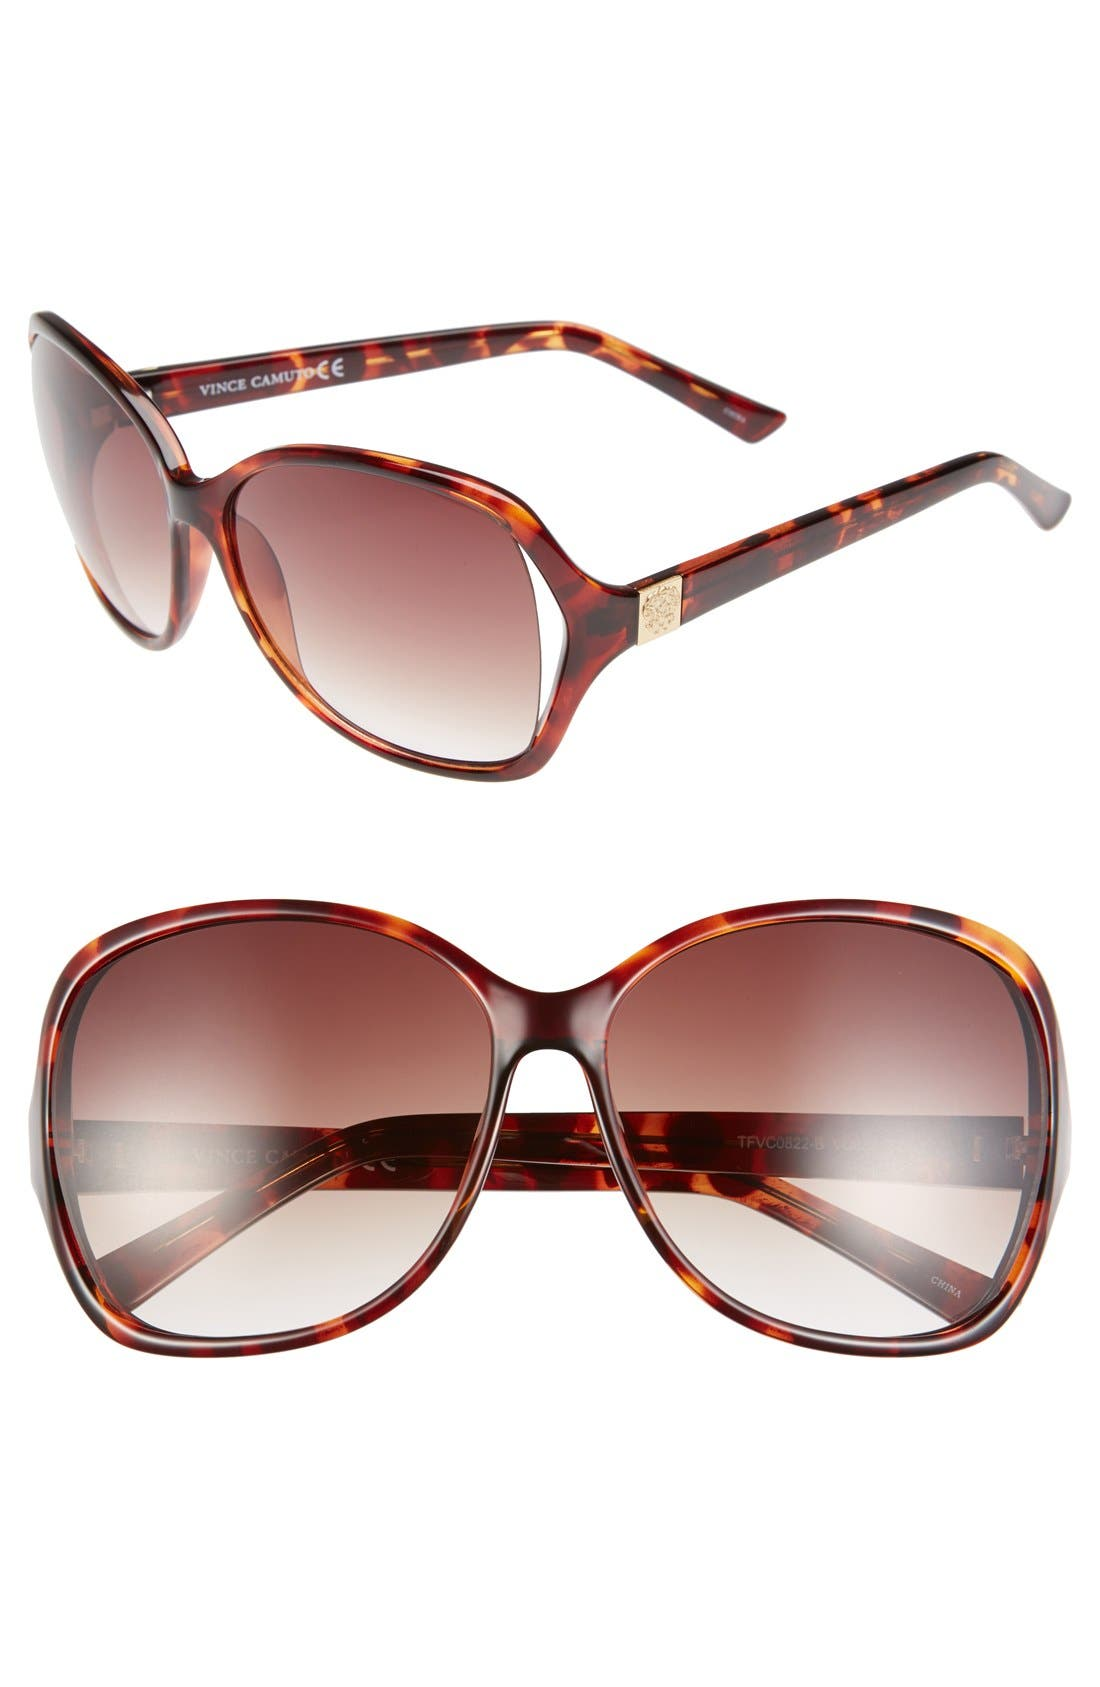 Main Image - Vince Camuto 62mm Vented Lens Rectangle Sunglasses